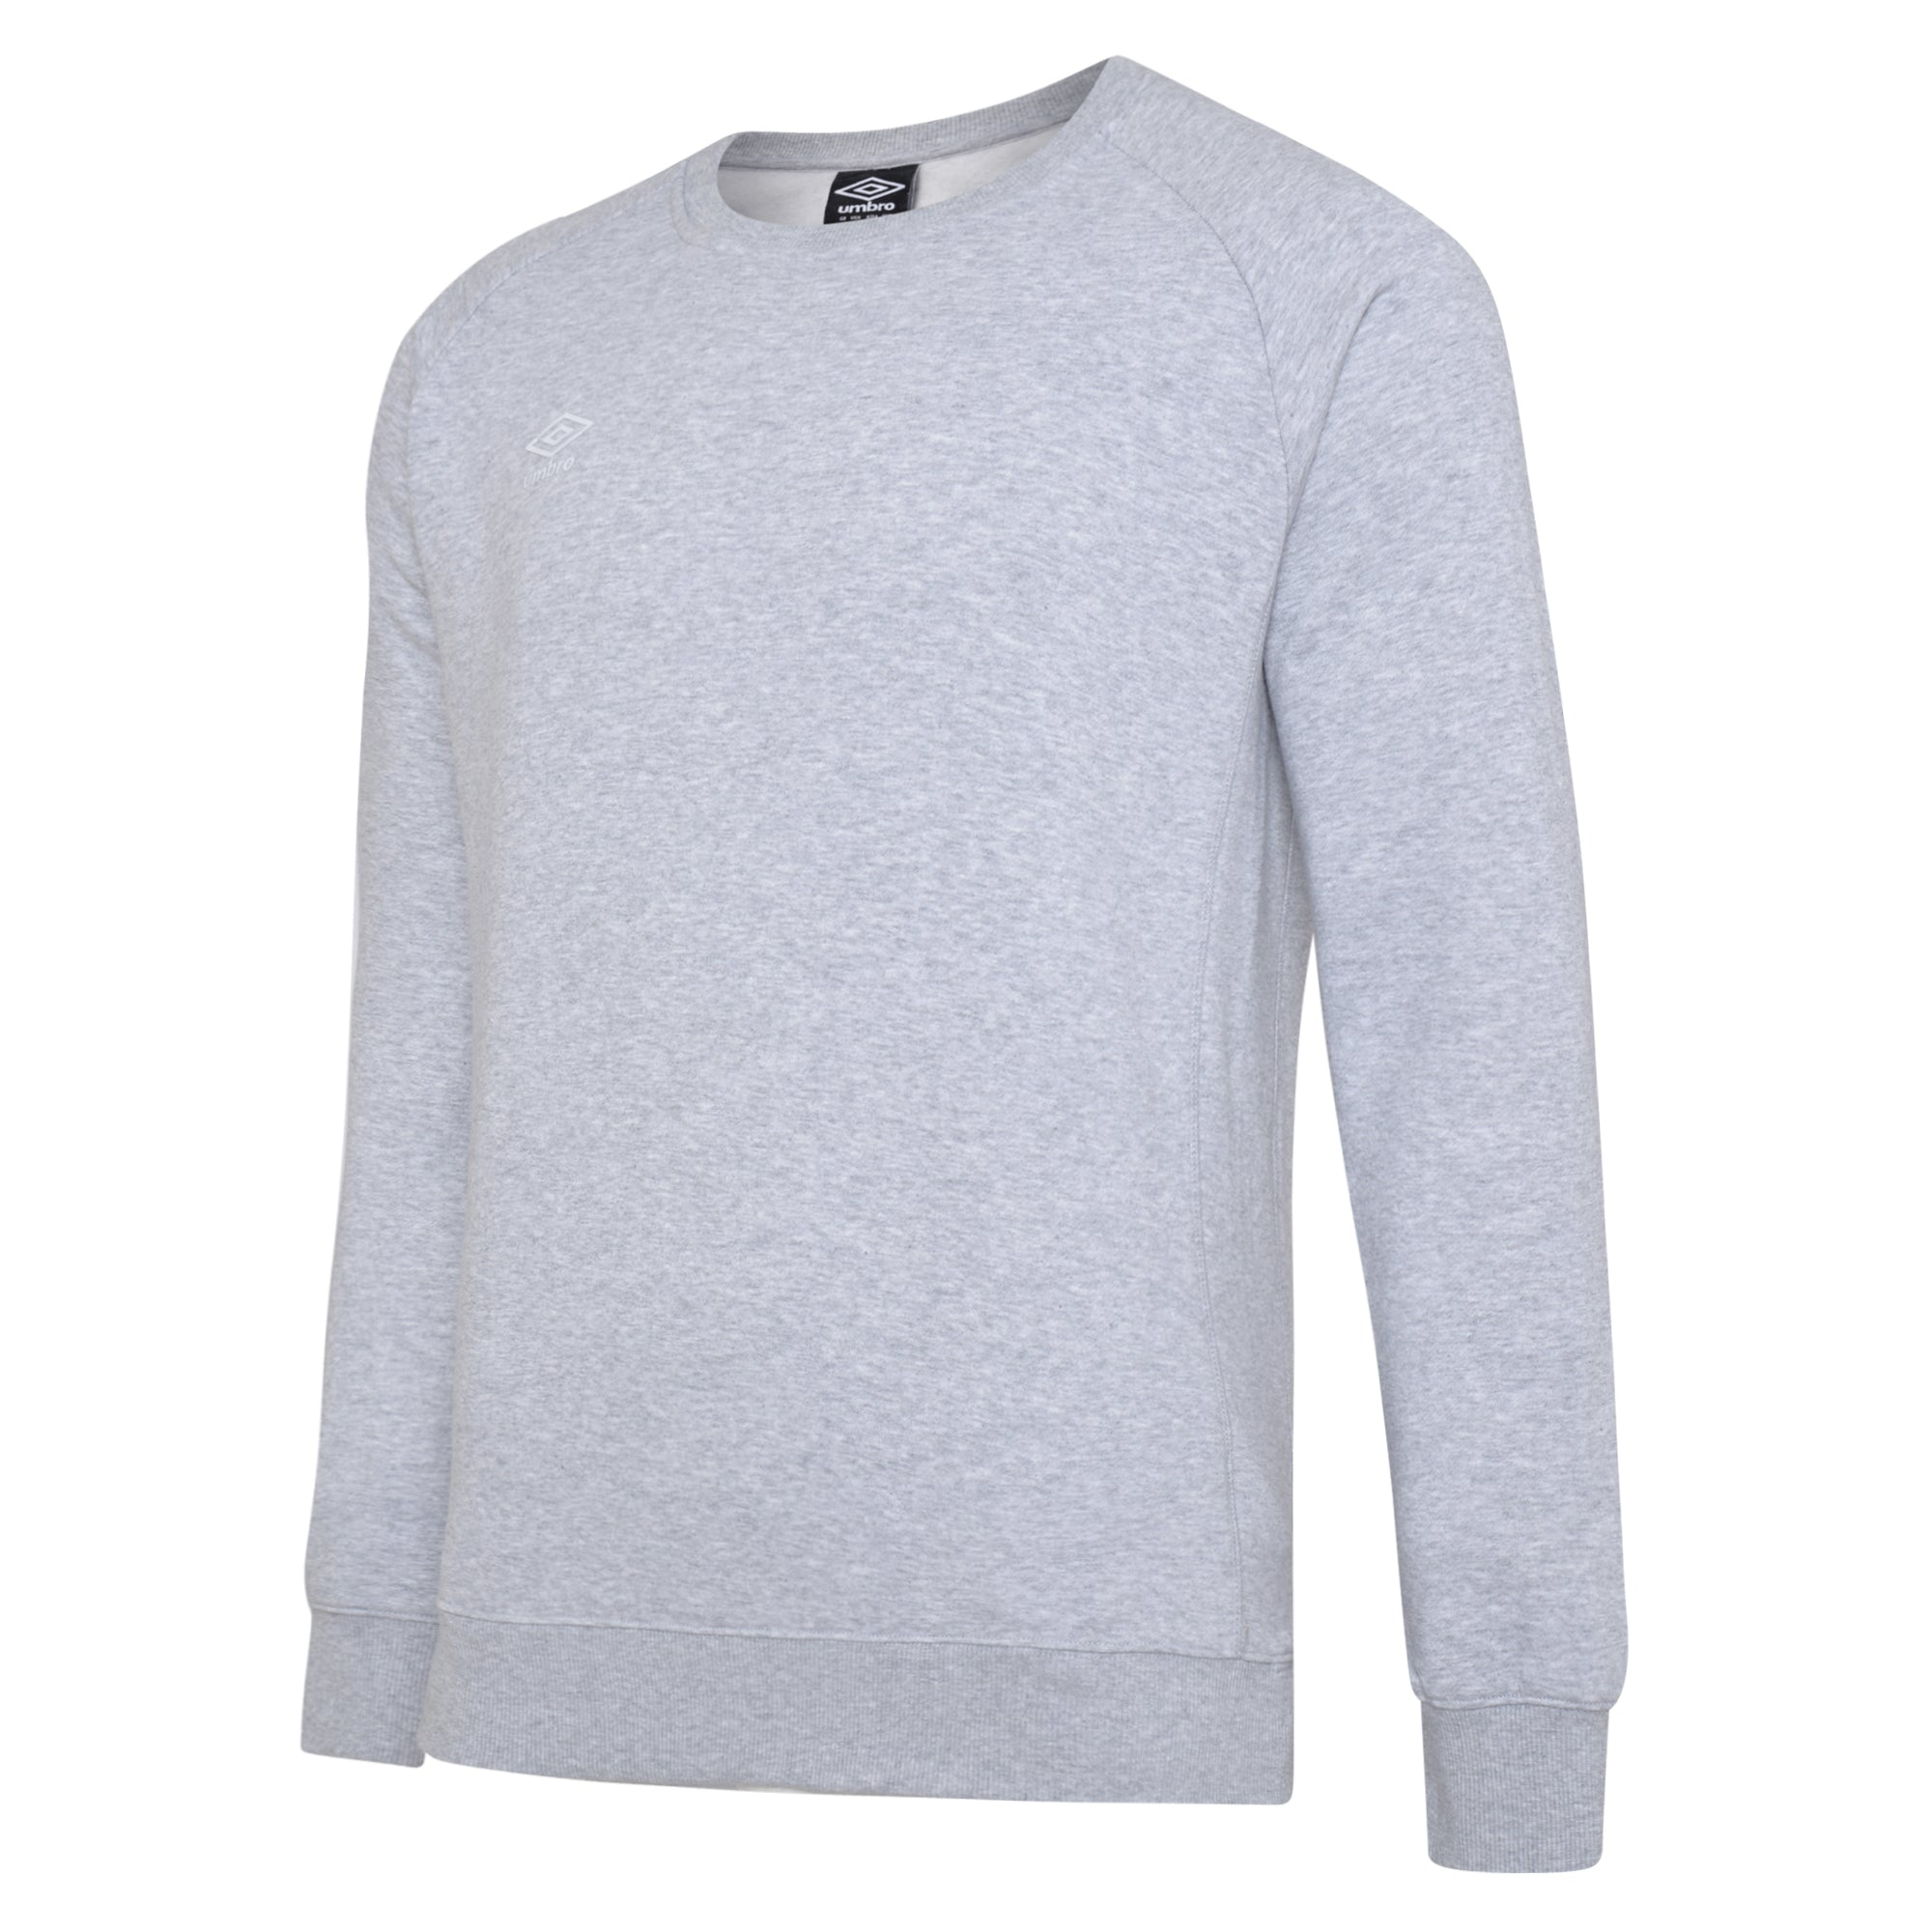 Umbro Club Leisure Sweat - Grey Marl/White